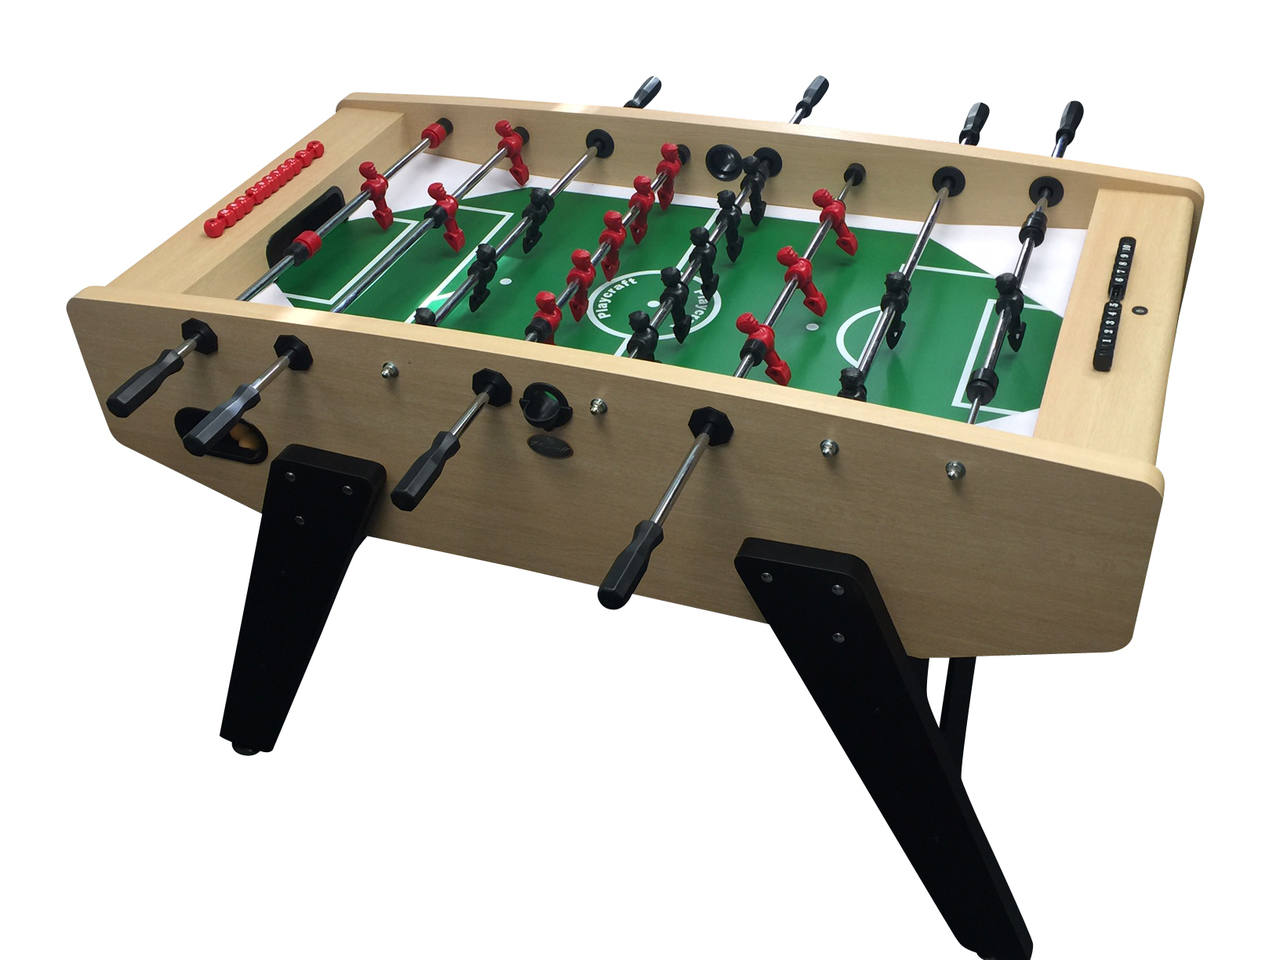 57 3 Light Maple Milan European Foosball Table